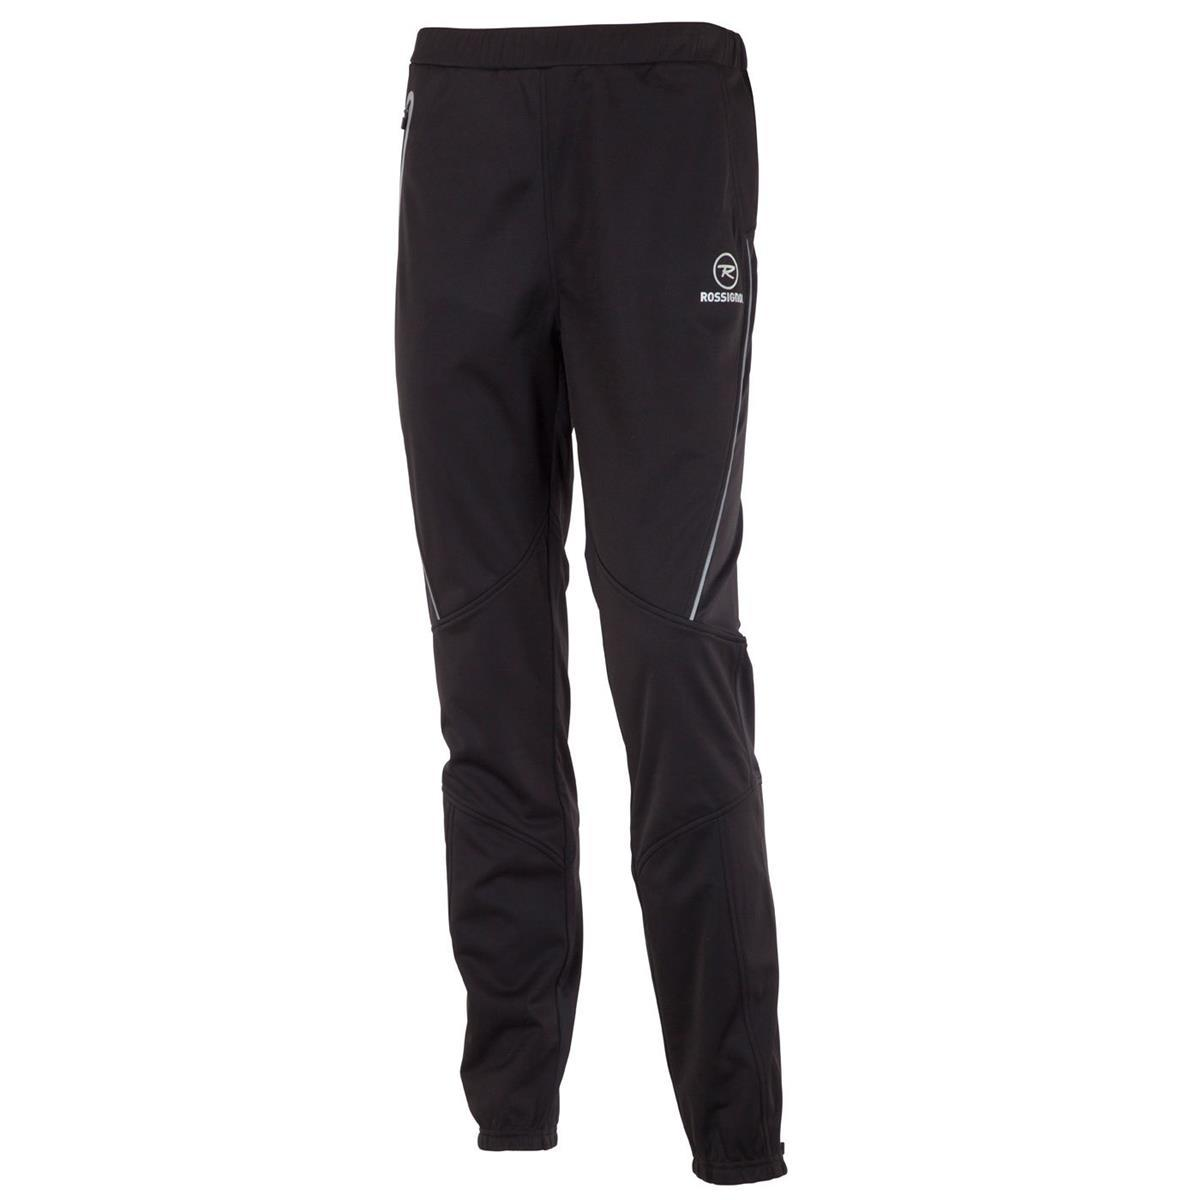 Rossignol Training Pant